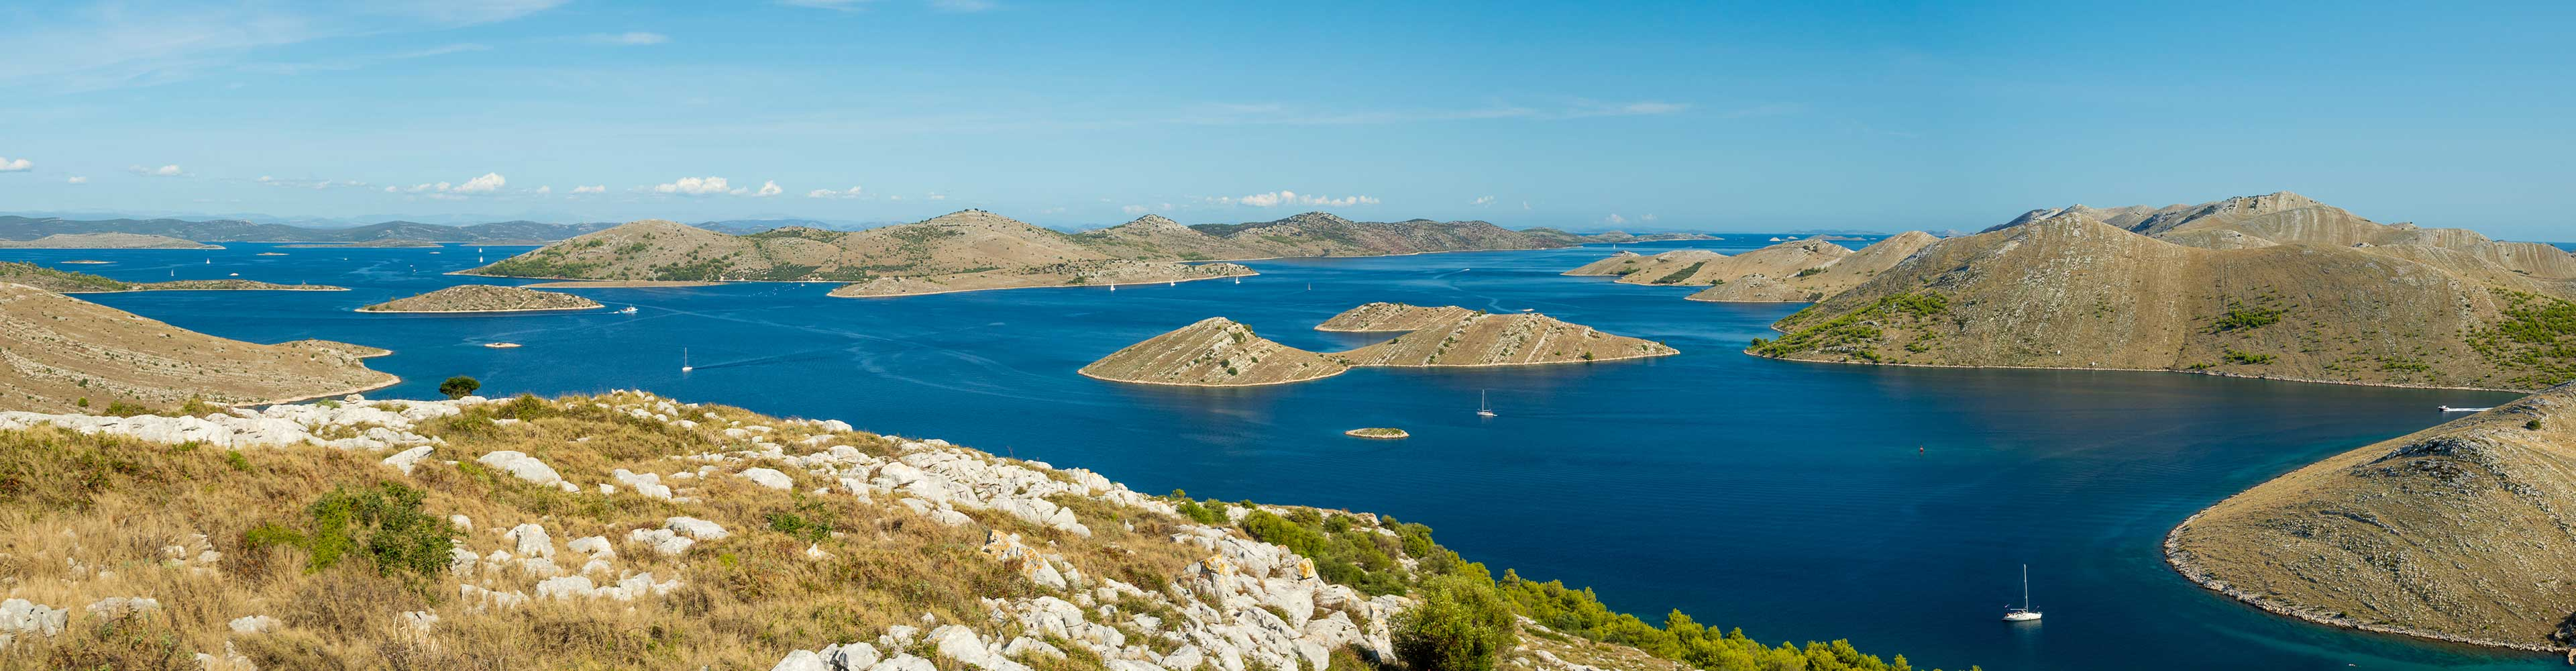 Cruise Croatia – Dubrovnik to  Split via Zadar